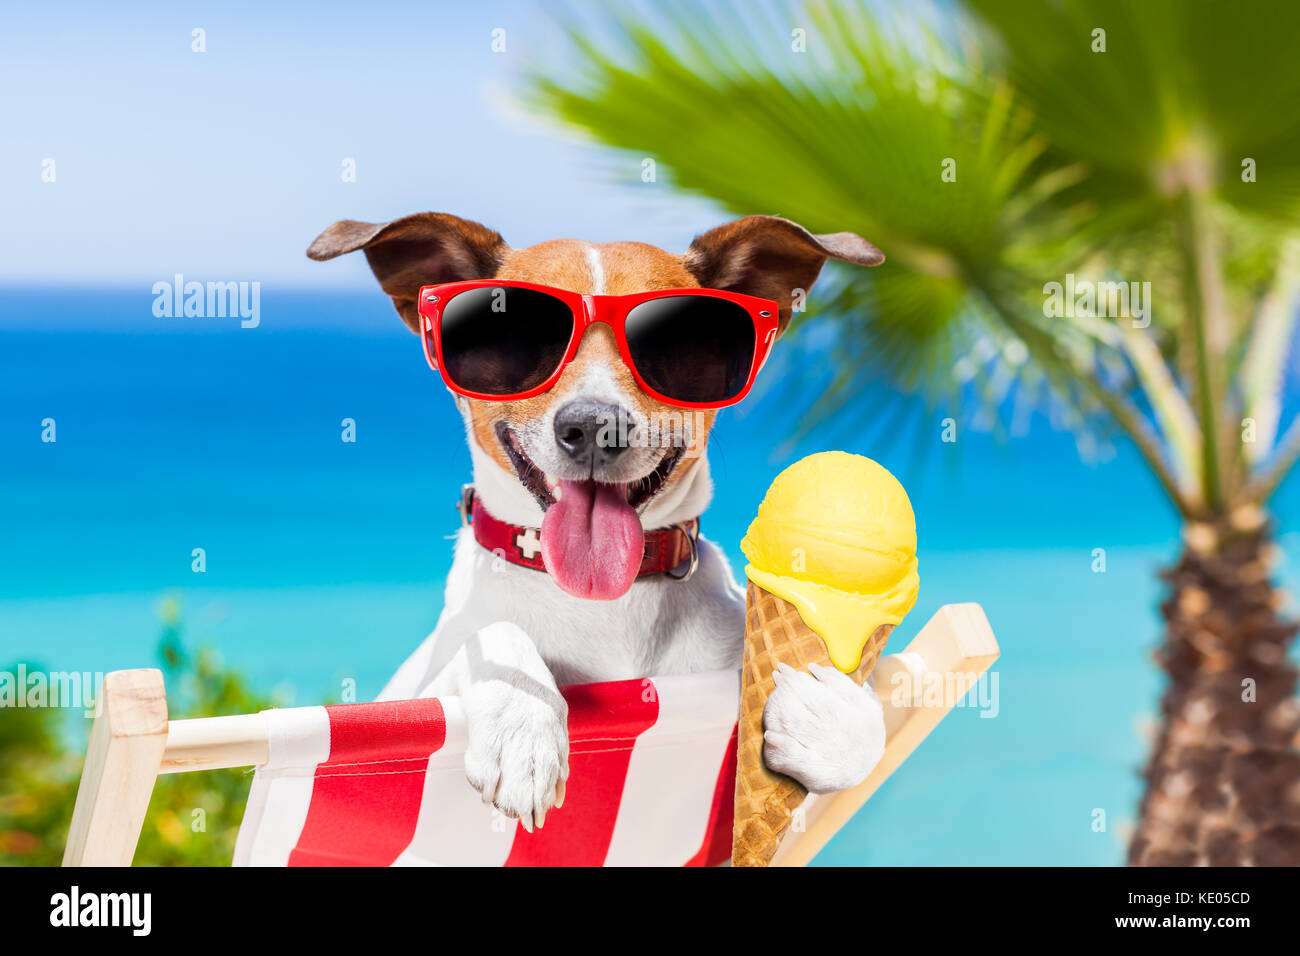 jack russell dog on hammock at the beach relaxing on summer vacation holidays eating a fresh lemon or vanilla ice cream on a cone waffle jack russell dog on hammock at the beach relaxing on summer stock      rh   alamy